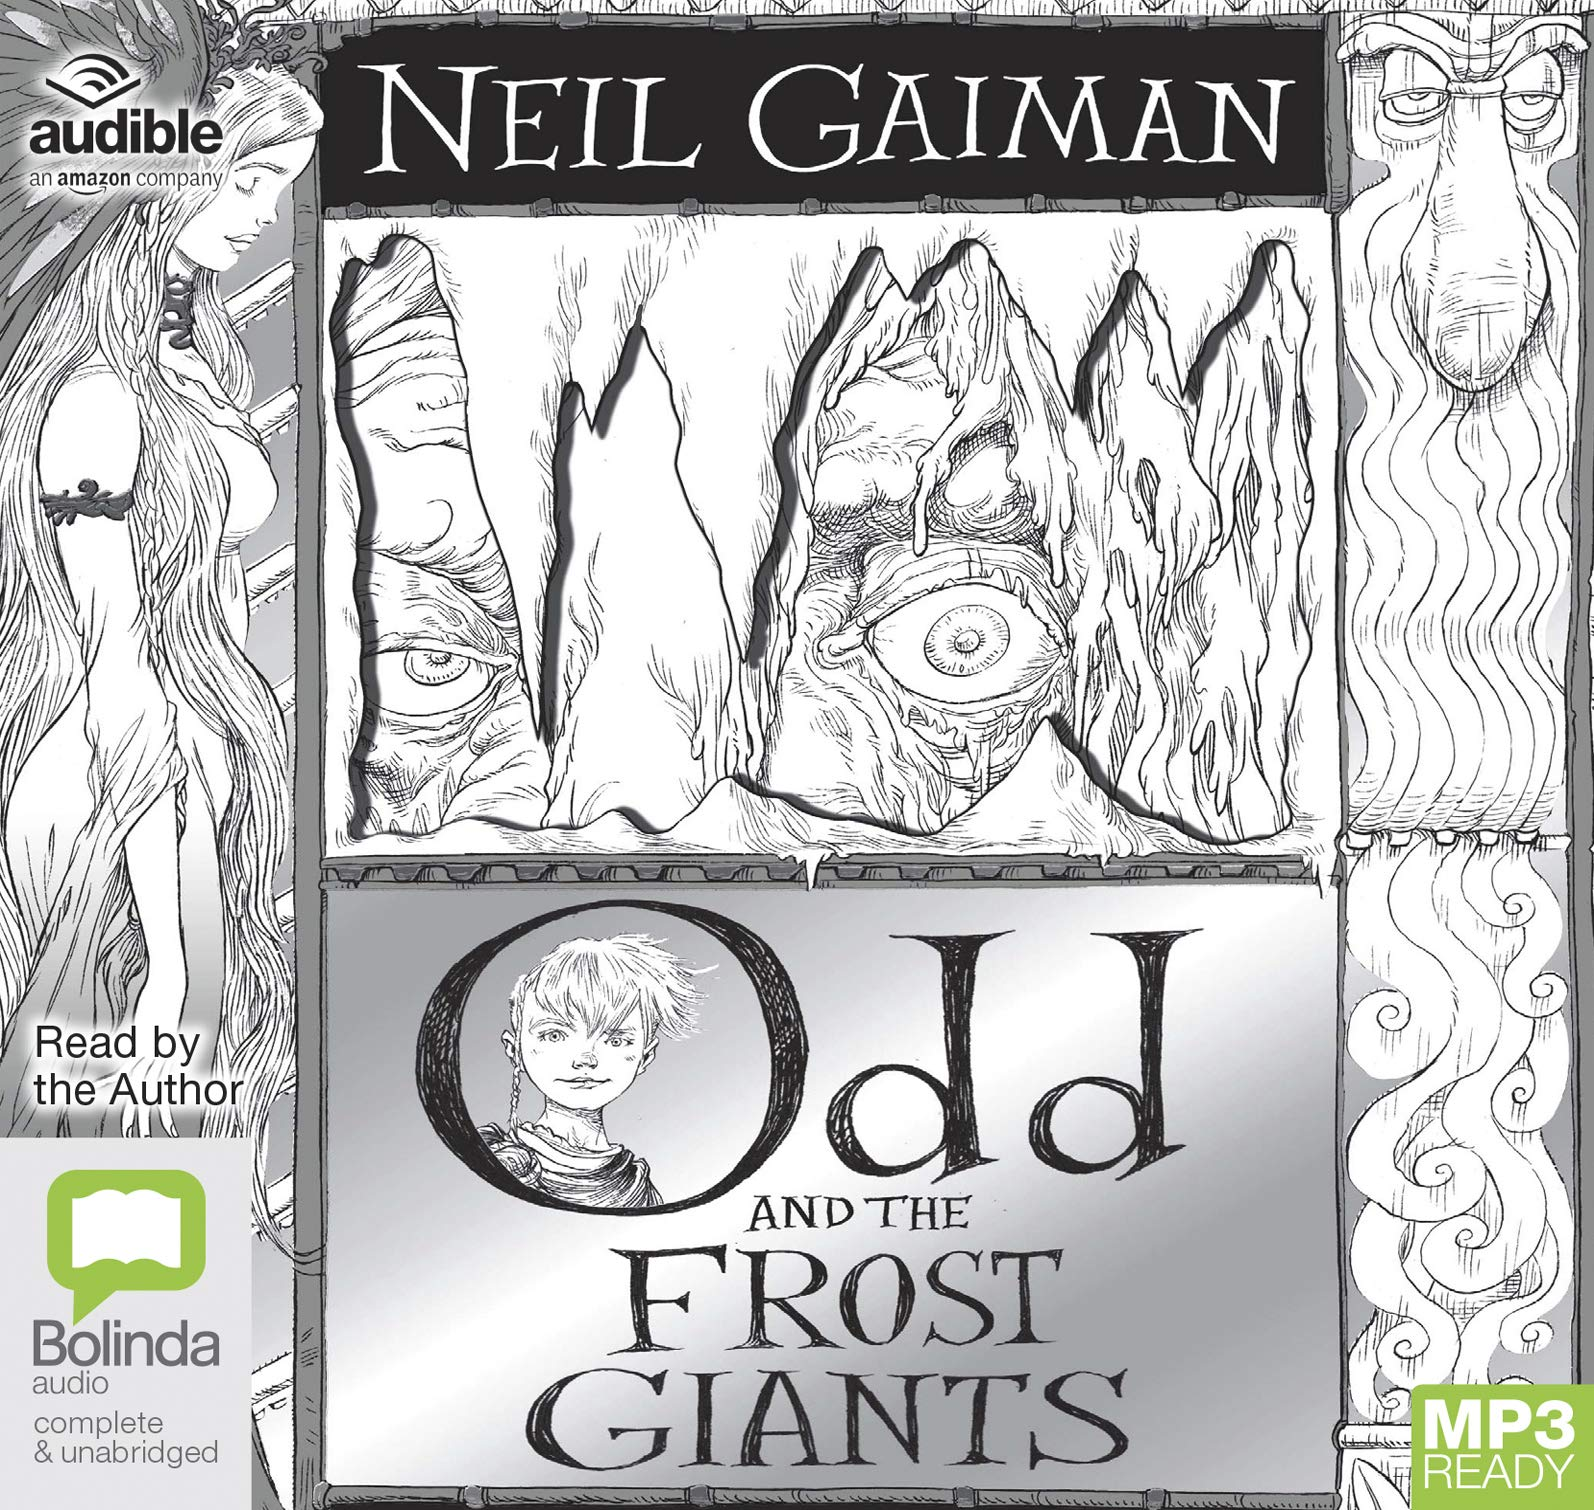 Odd and the Frost Giants: Amazon.co.uk: Gaiman, Neil, Gaiman, Neil: Books